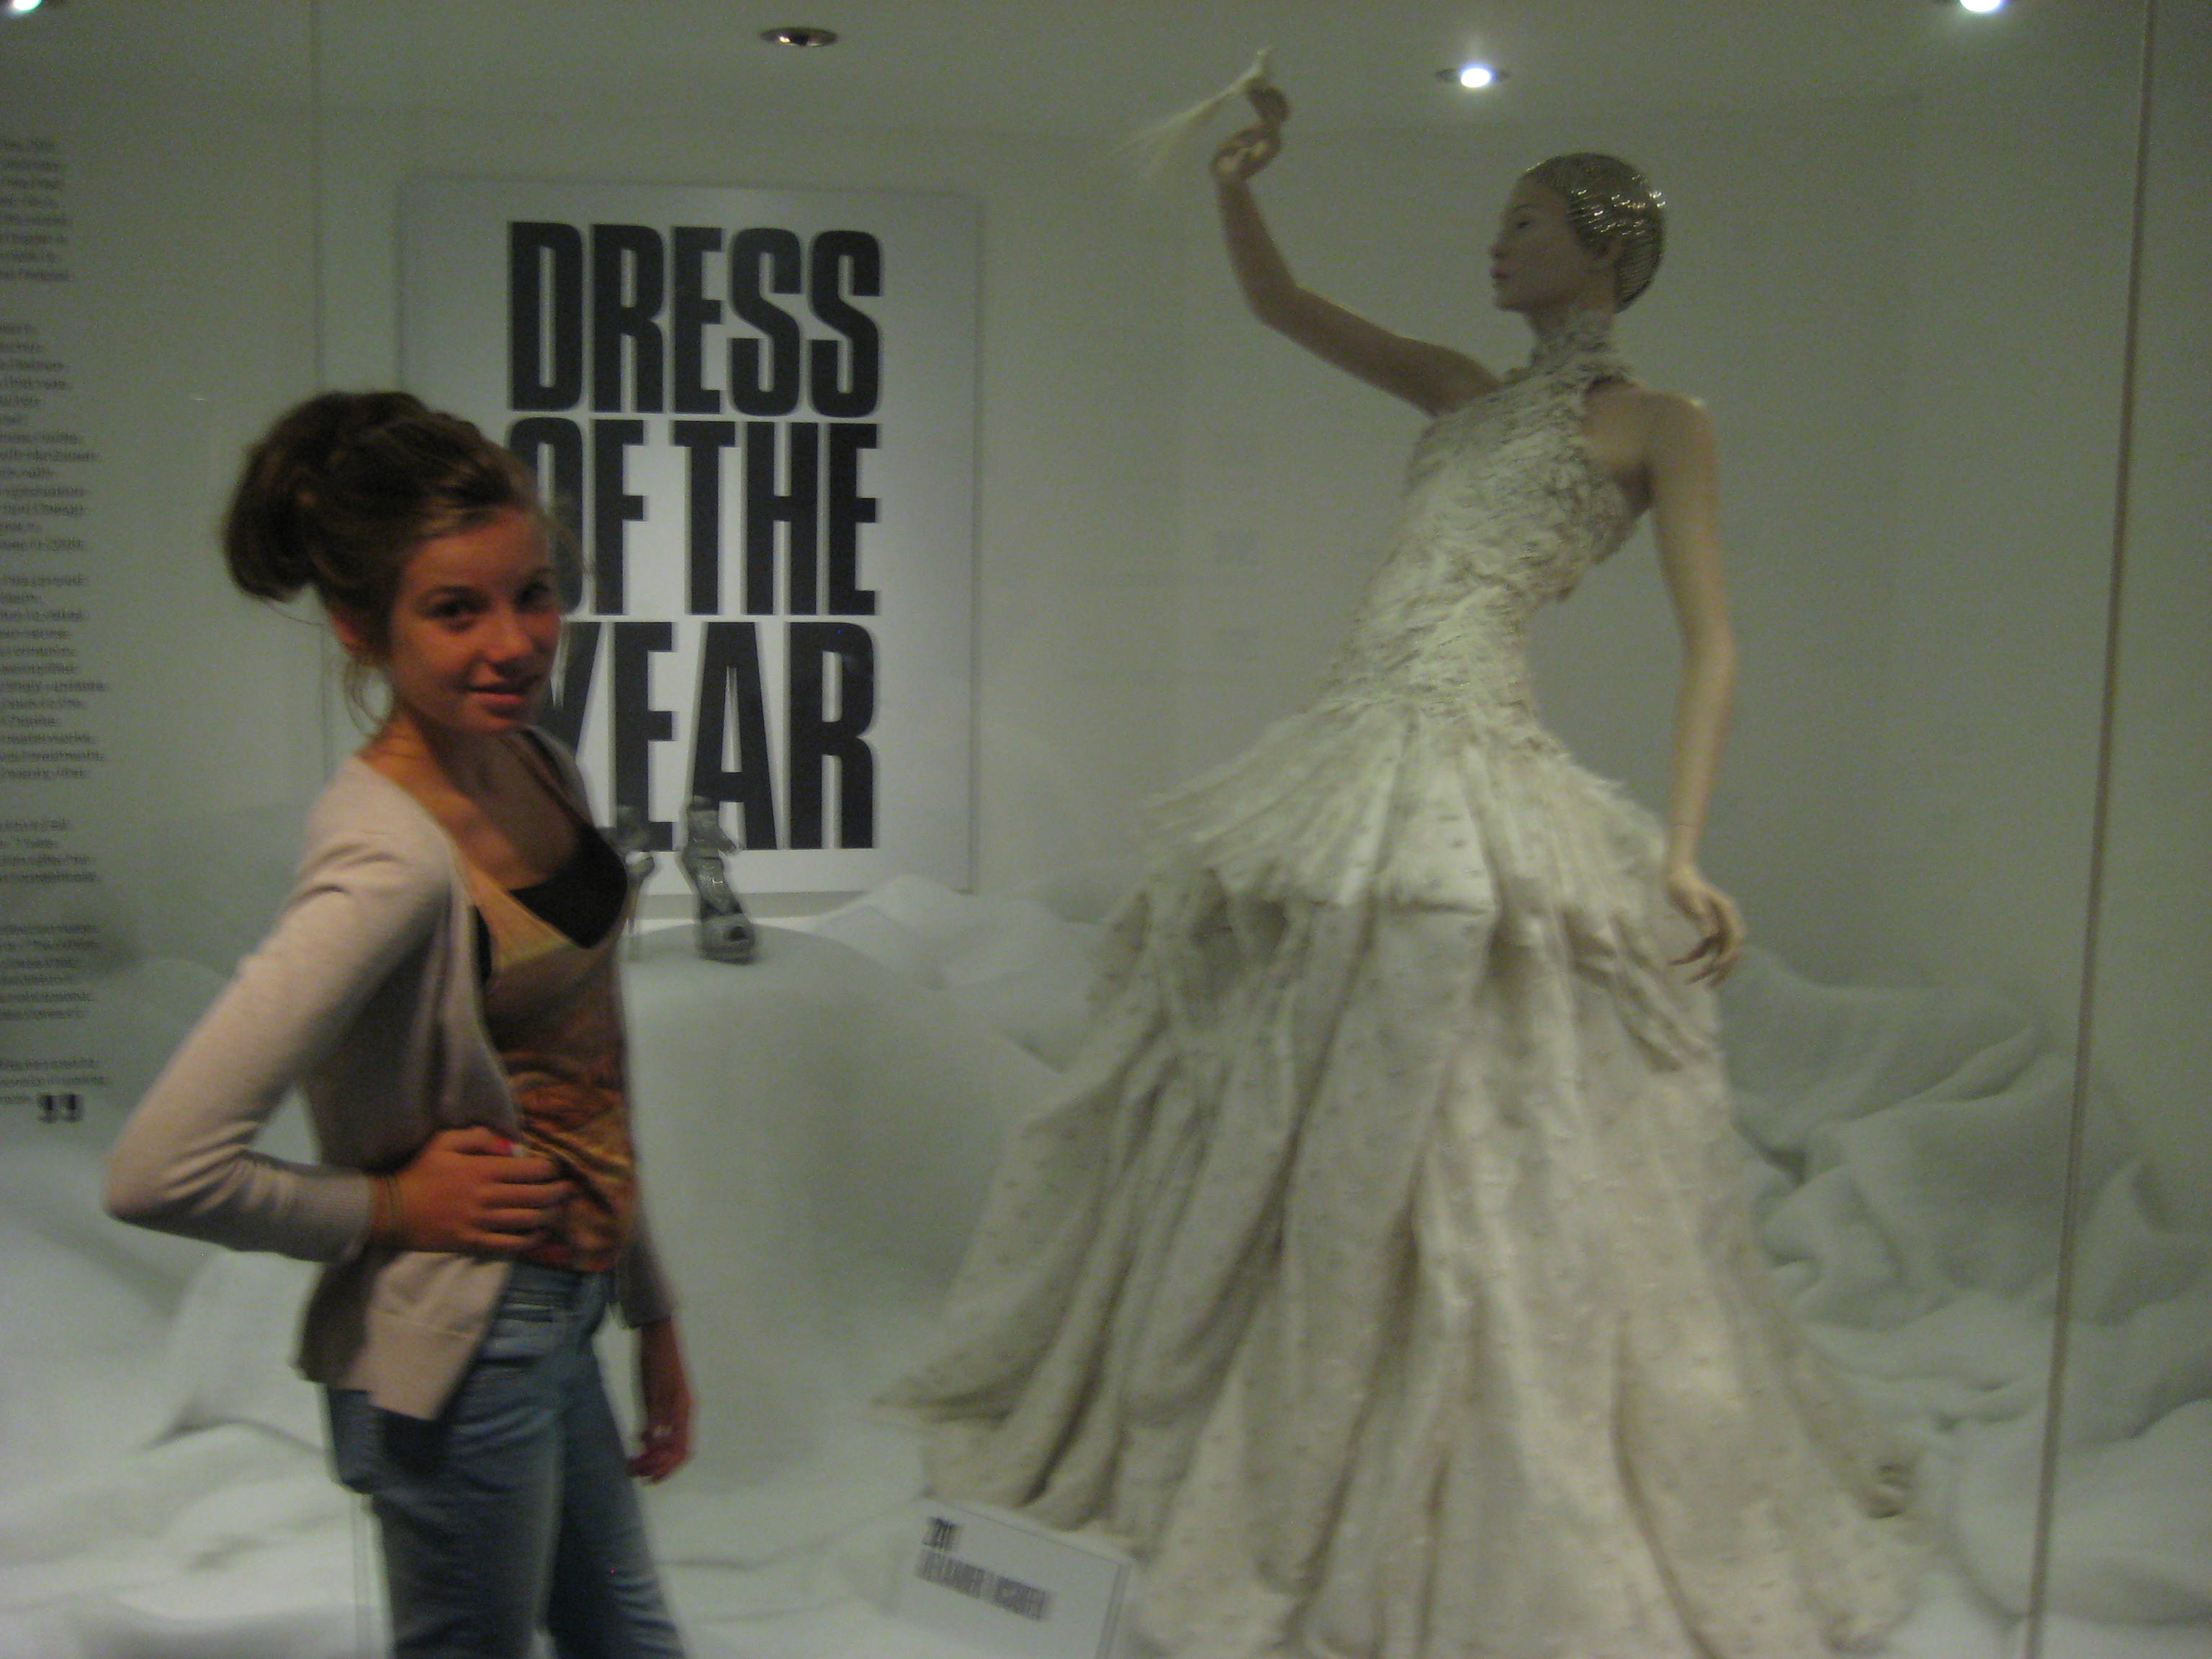 Dress of the Year for 2012 at the Fashion MuseumFashion blogger to choose  Dress of the Year    BATH NEWSEUM. Bath Fashion Museum Gift Shop. Home Design Ideas